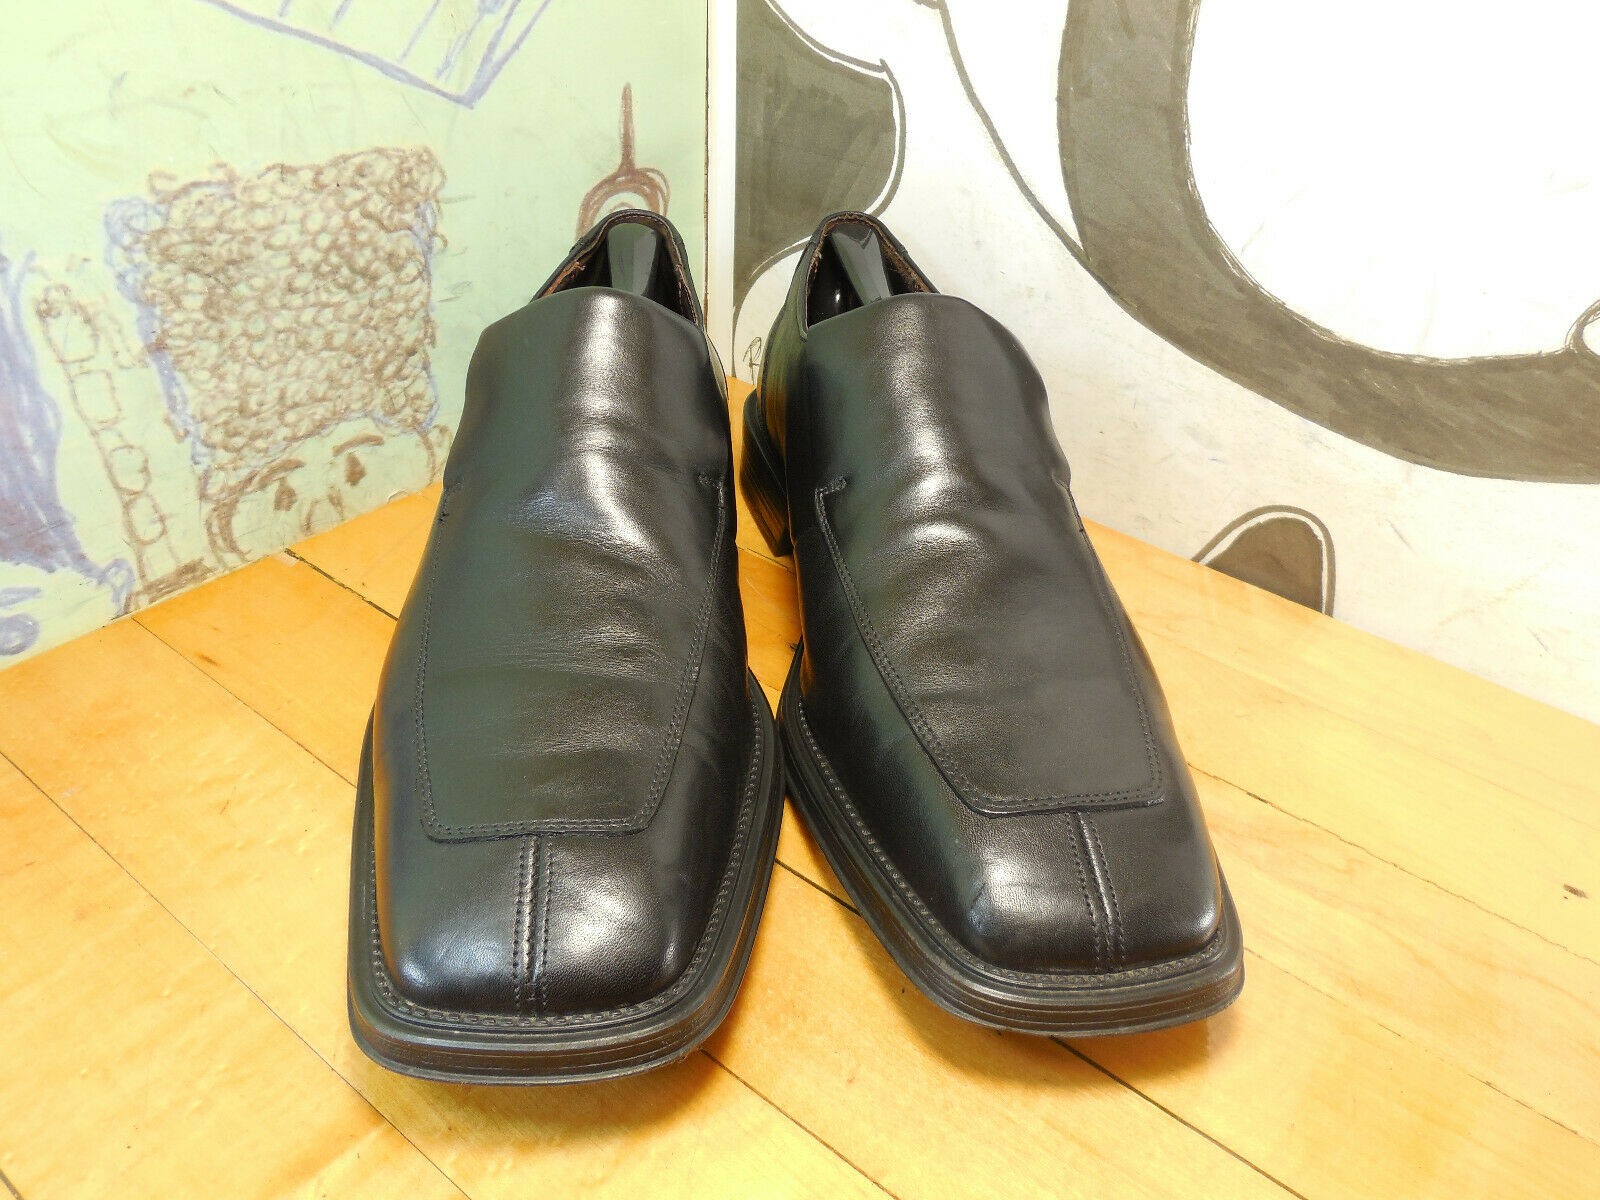 Kenneth Cole Reaction Black Leather Loafers Men's 11.5M